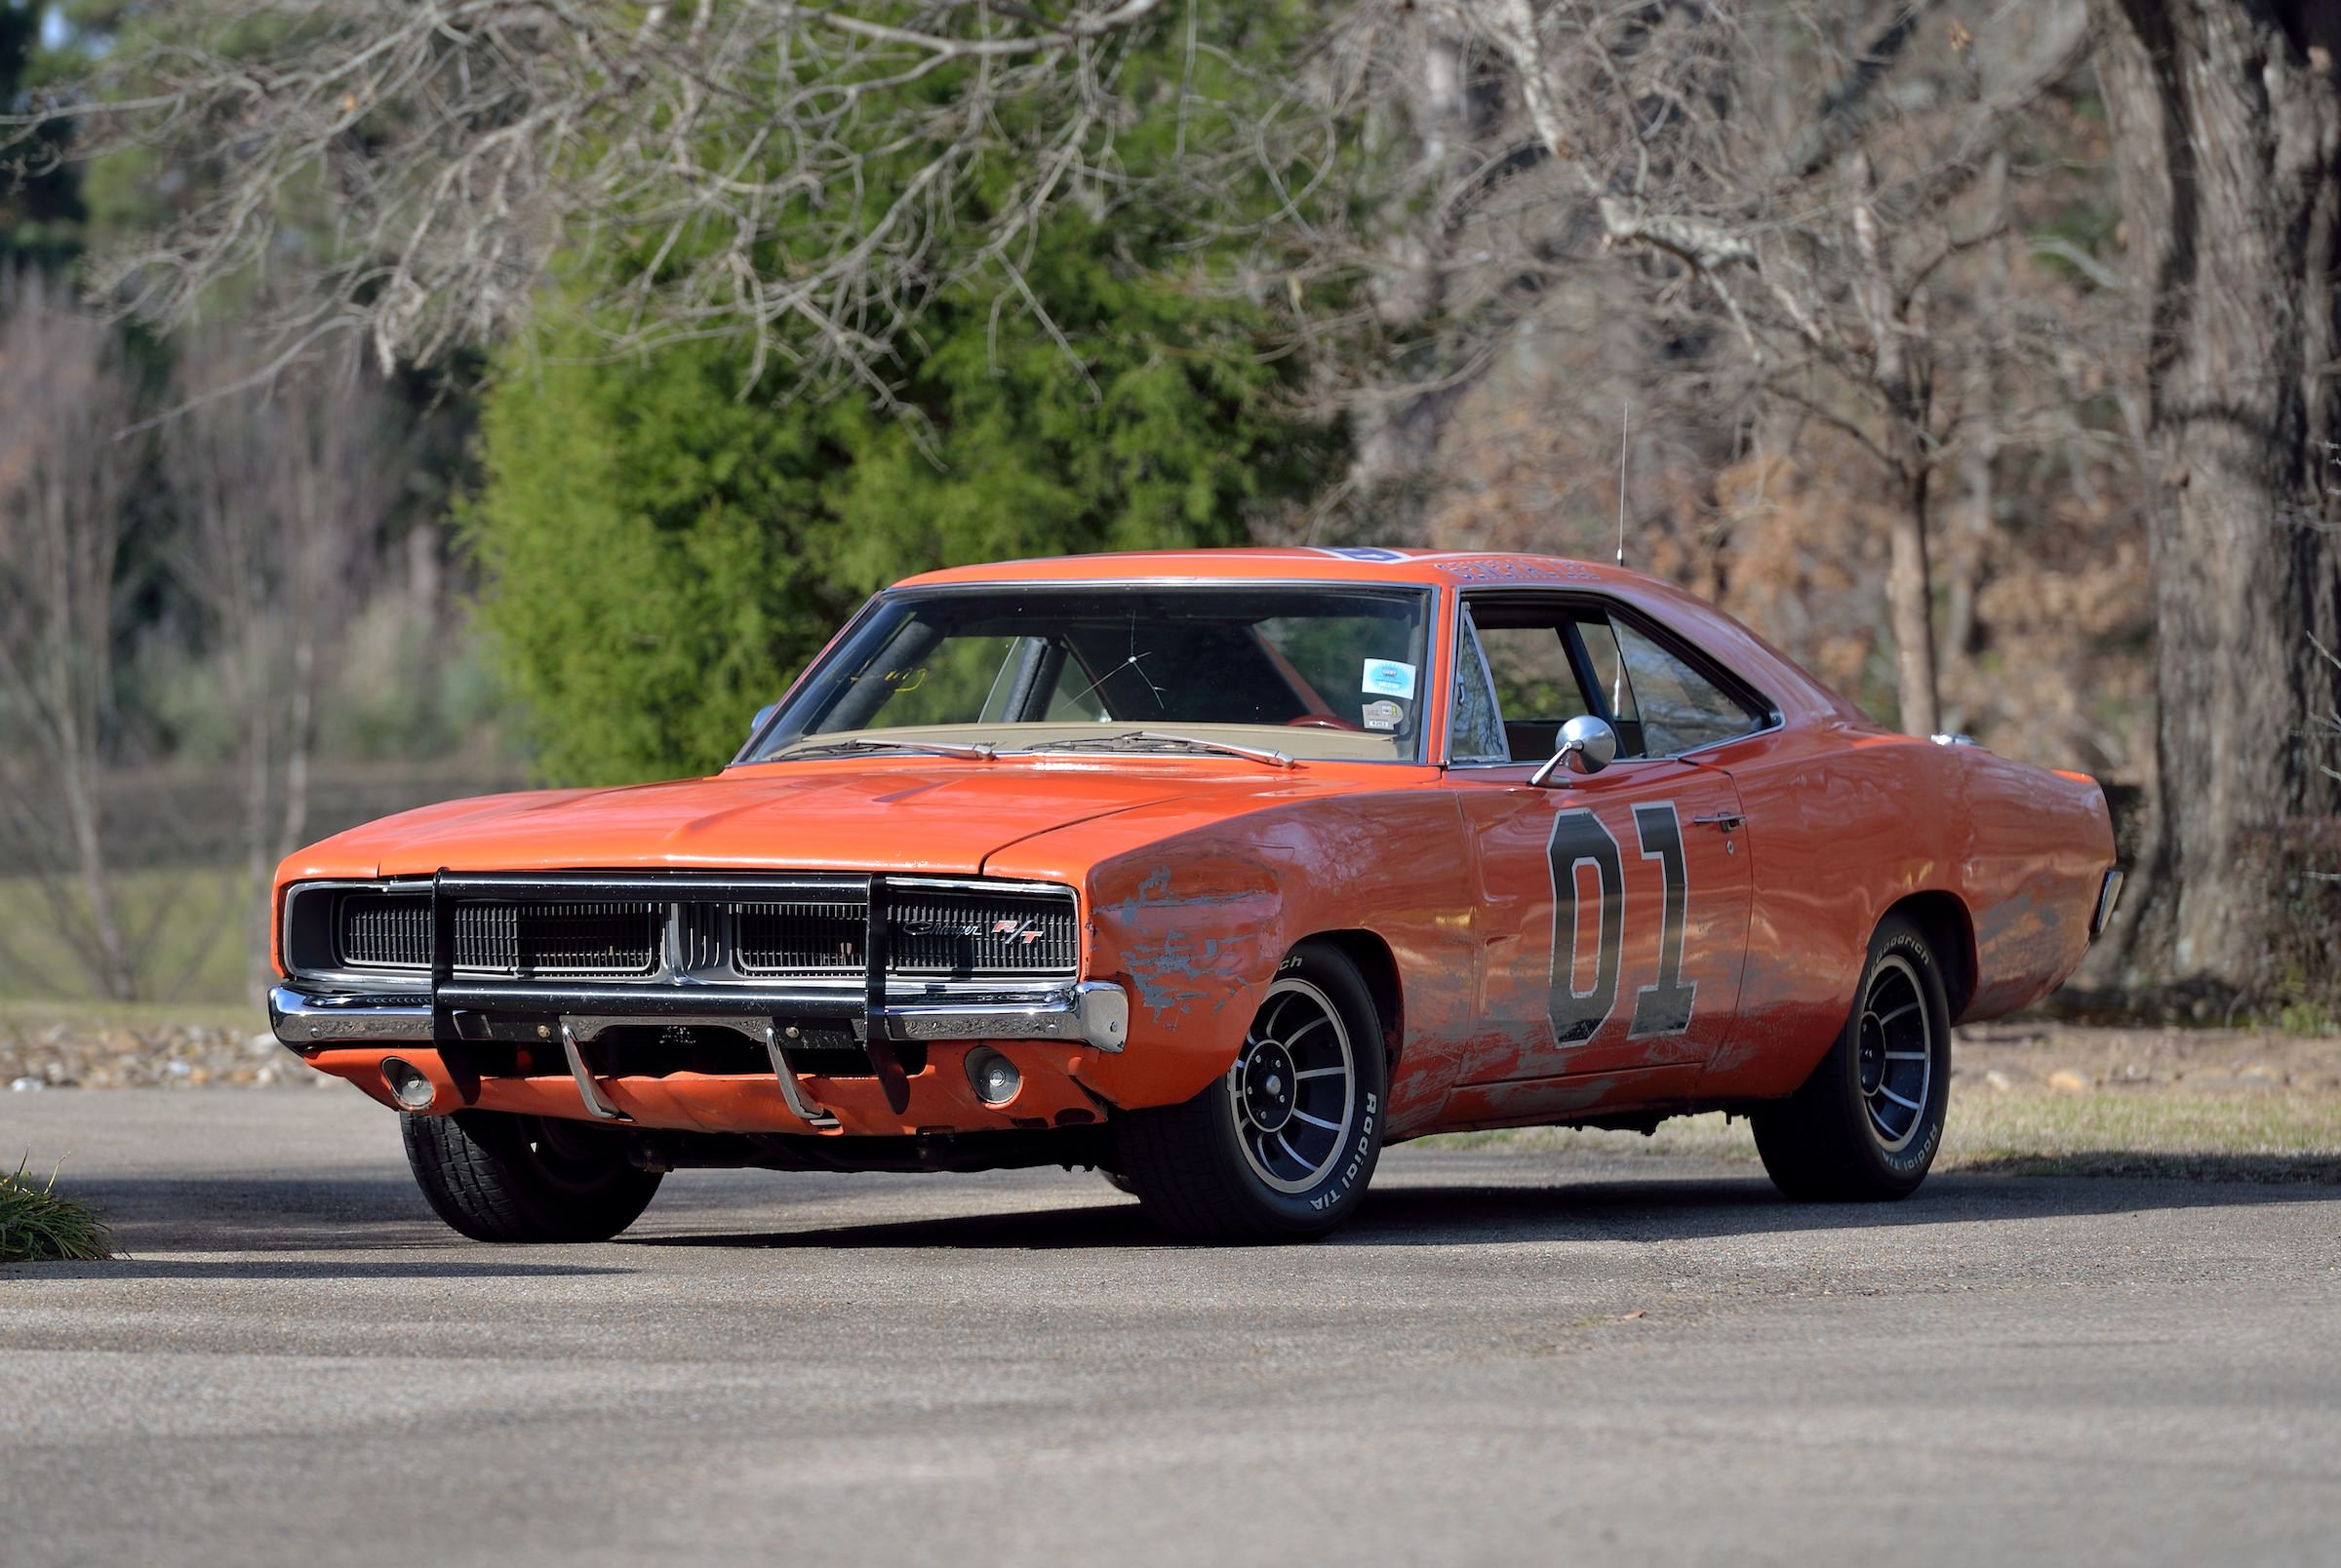 For Sale: An Original Dukes of Hazzard Movie Stunt Car  For Sale: An Or...